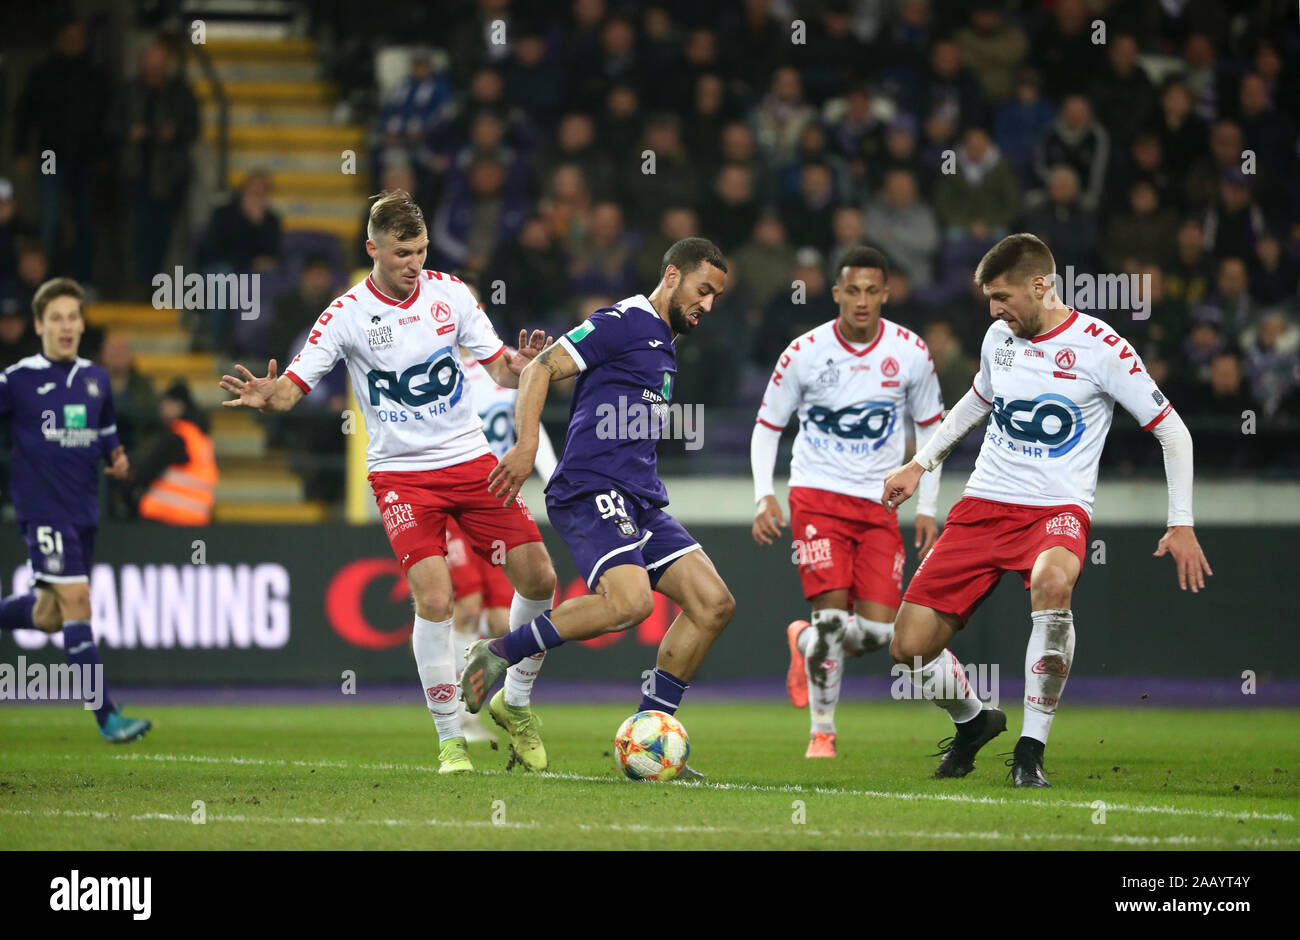 BRUSSELS, BELGIUM - NOVEMBER 24: Kemar Roofe of Anderlecht battles for the ball with Andriy Batsula of Kortrijk and Vladimir Kovacevic of Kv Kortrijk during the Jupiler Pro League match day 16 between RSC Anderlecht and KV Kortrijk on November 24, 2019 in Credit: Pro Shots/Alamy Live News Stock Photo